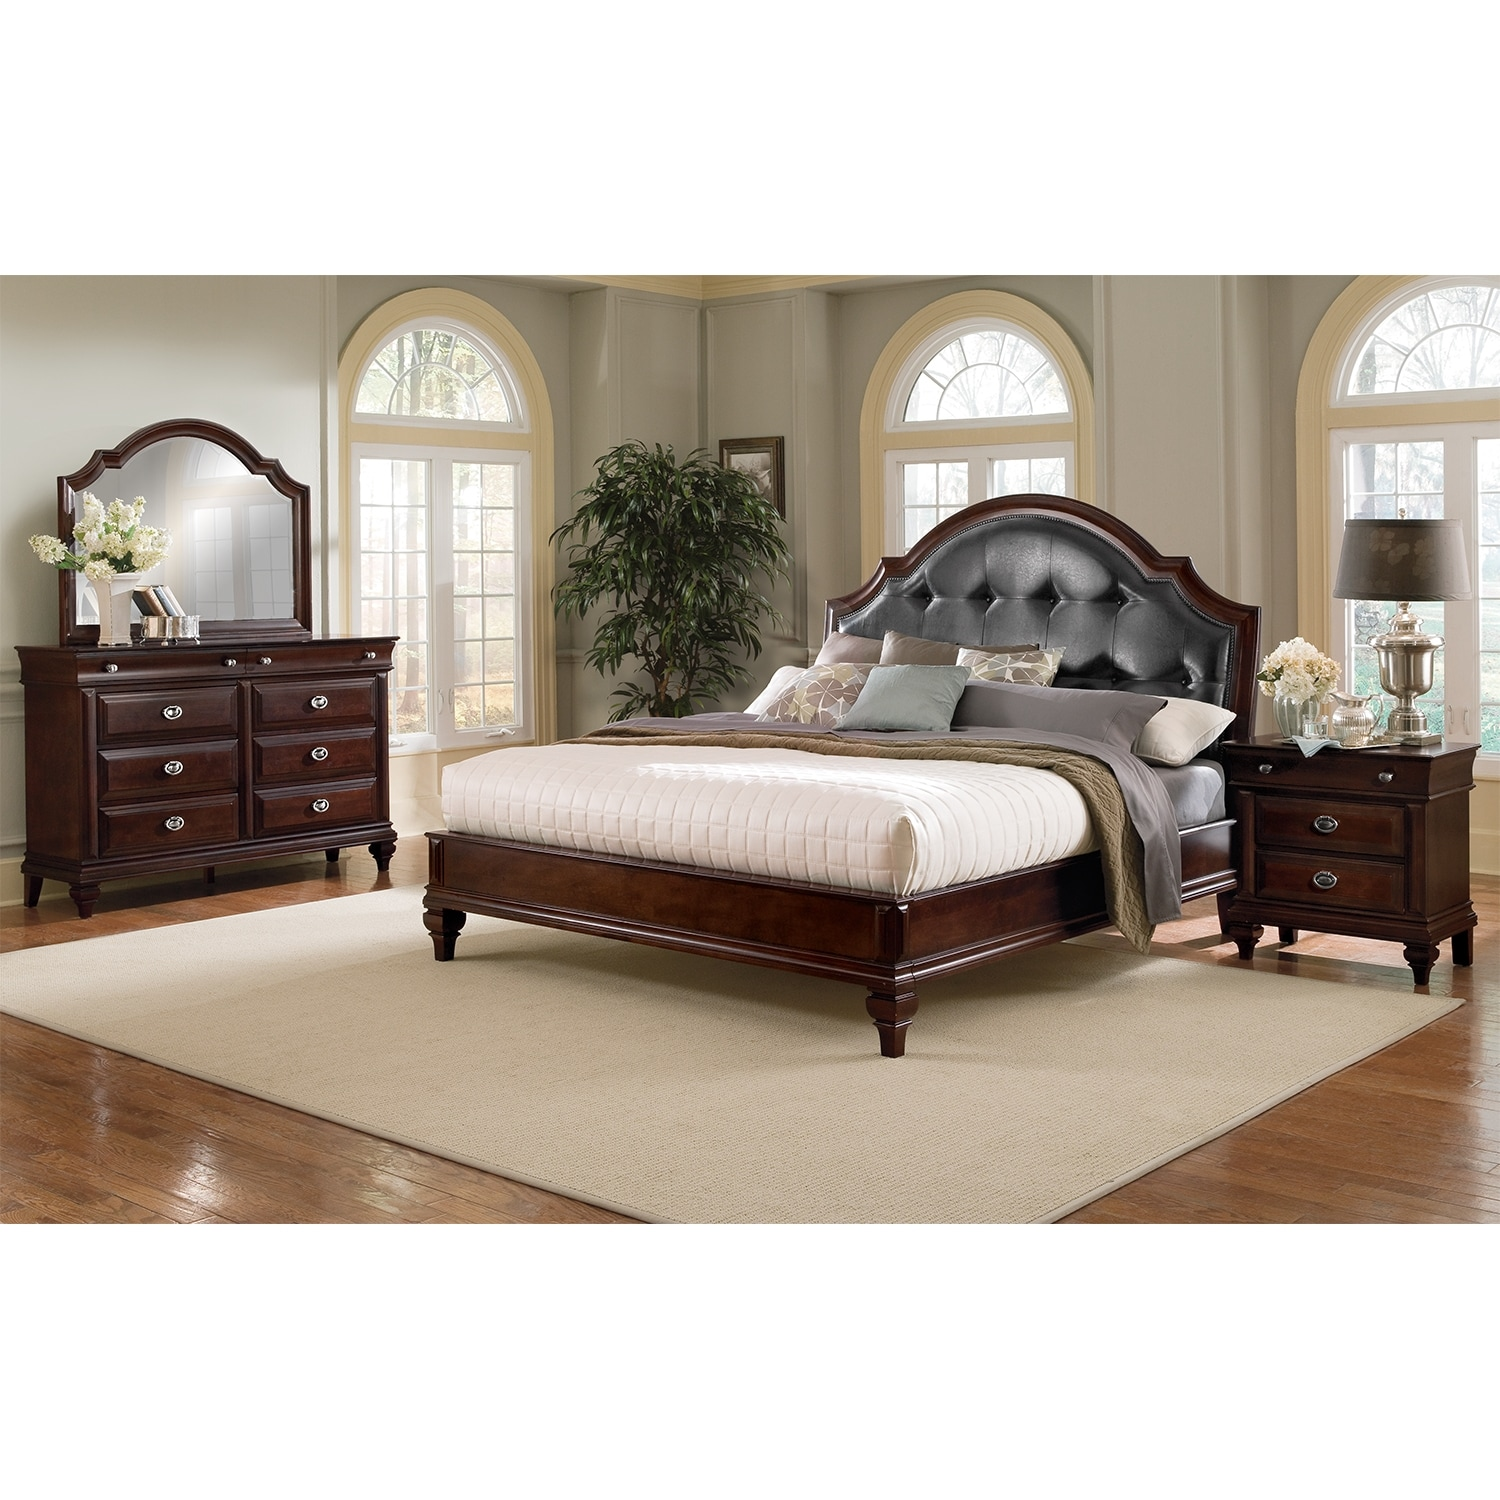 Manhattan 6 Piece King Bedroom Set Cherry Value City Furniture